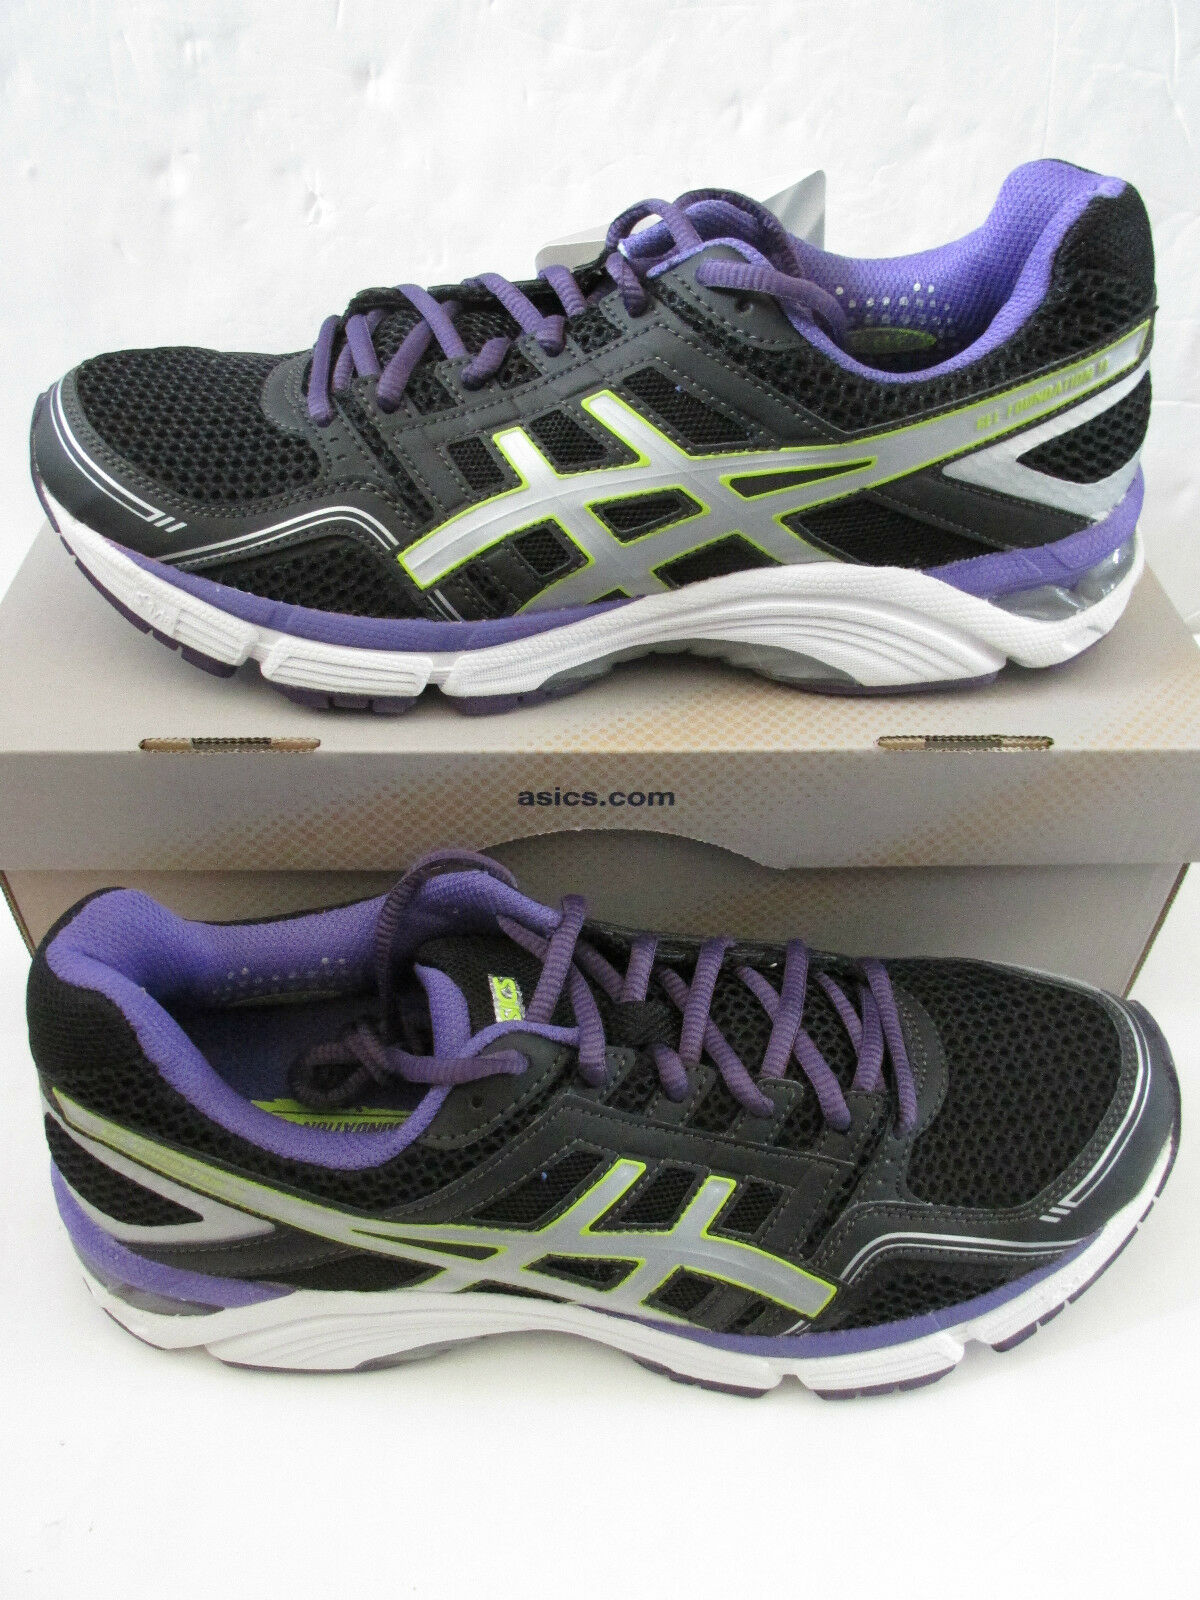 Asics womens womens womens gel-foundation 11 running trainers T2A6N 9091 sneakers shoes a6df50